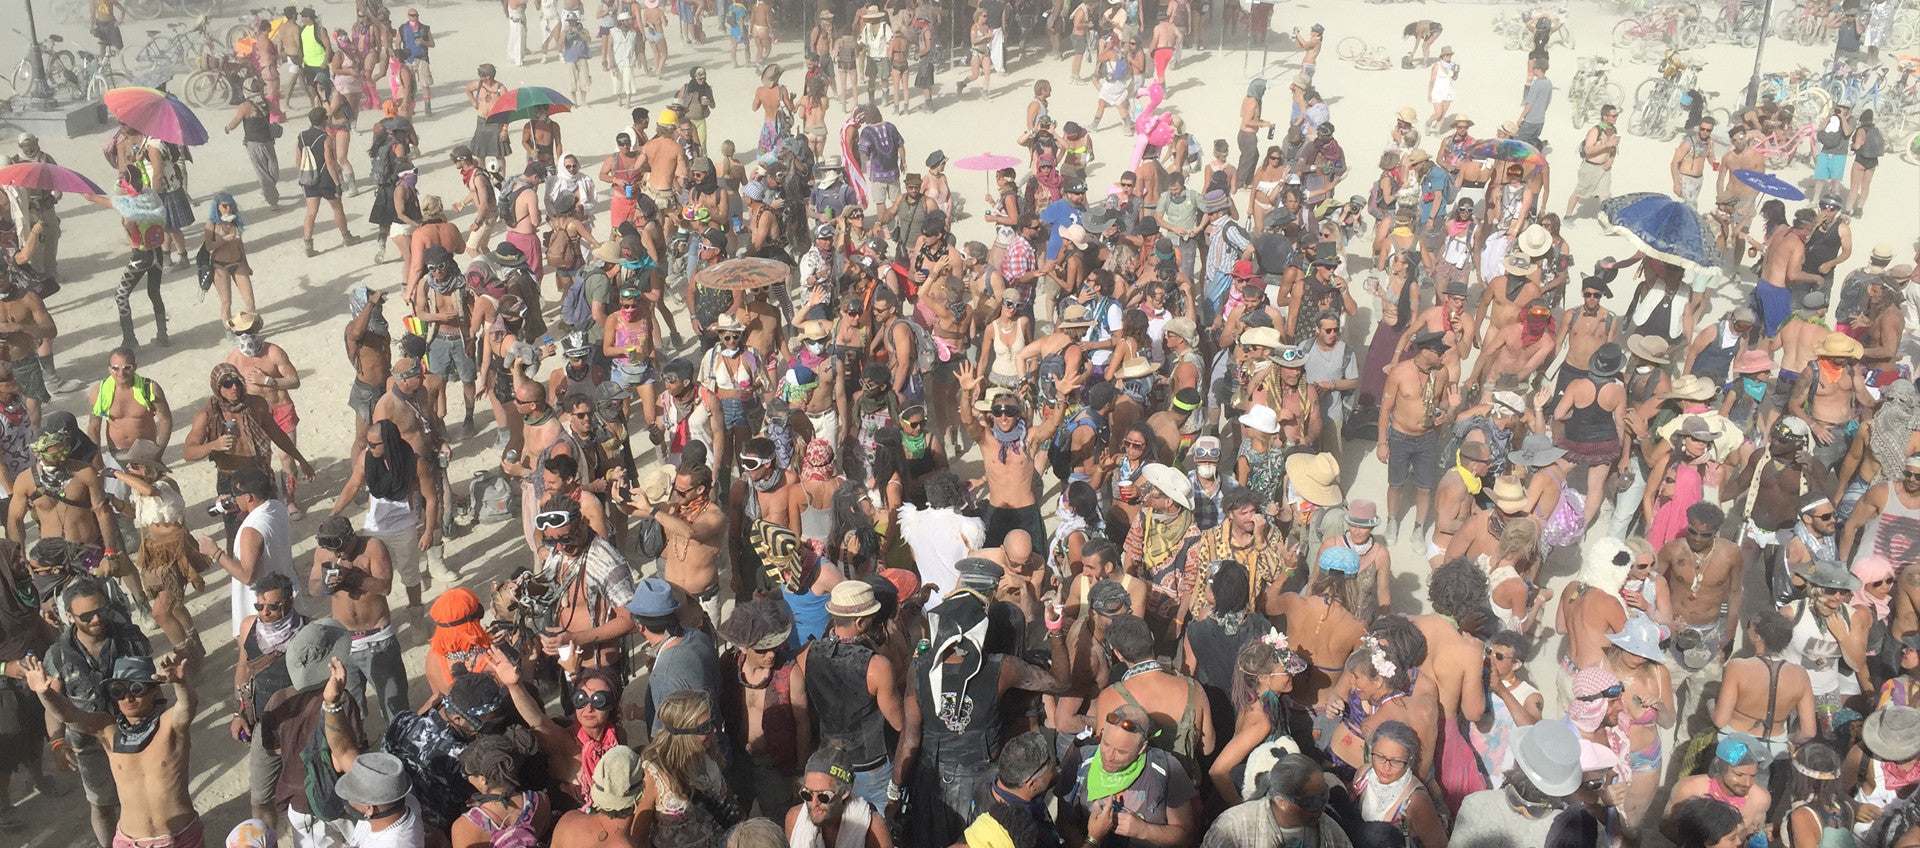 Where's Waldo? And How Did He Get Tickets to Burning Man?!